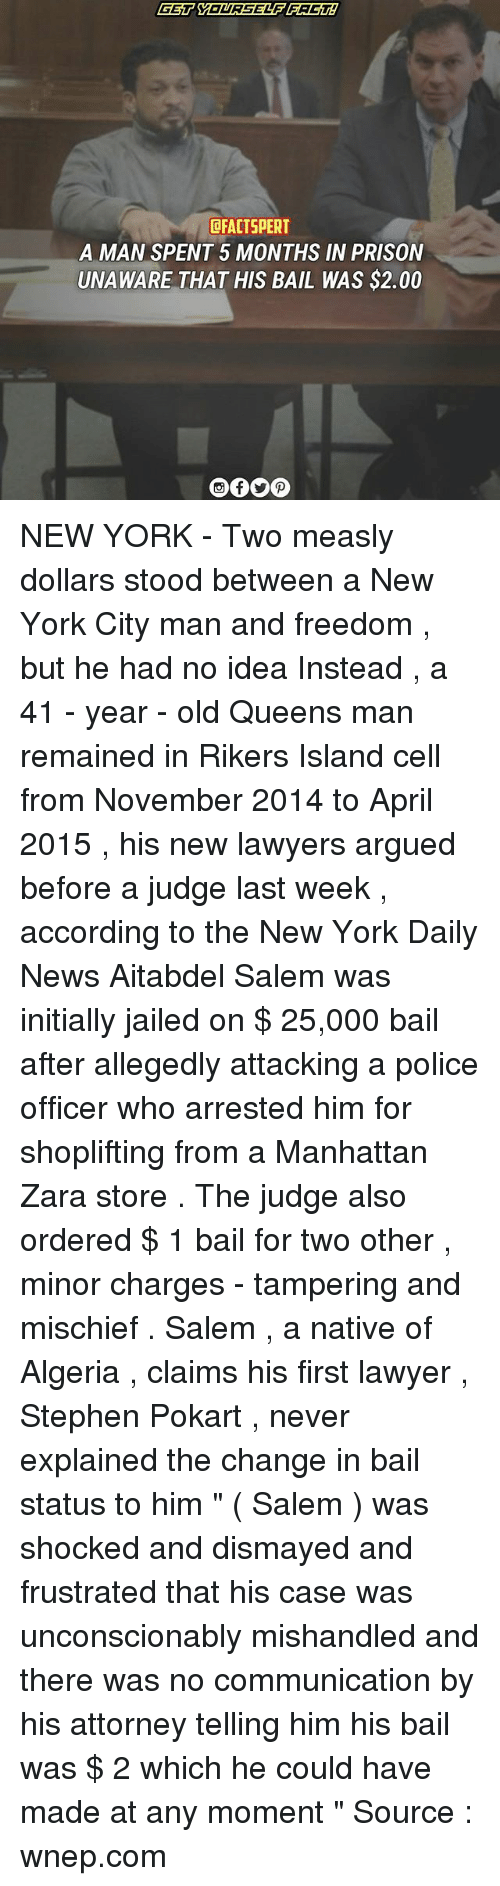 """Salemance: DFACTSPERT  A MAN SPENT 5 MONTHS IN PRISON  UNAWARE THAT HIS BAIL WAS $2.00 NEW YORK - Two measly dollars stood between a New York City man and freedom , but he had no idea Instead , a 41 - year - old Queens man remained in Rikers Island cell from November 2014 to April 2015 , his new lawyers argued before a judge last week , according to the New York Daily News Aitabdel Salem was initially jailed on $ 25,000 bail after allegedly attacking a police officer who arrested him for shoplifting from a Manhattan Zara store . The judge also ordered $ 1 bail for two other , minor charges - tampering and mischief . Salem , a native of Algeria , claims his first lawyer , Stephen Pokart , never explained the change in bail status to him """" ( Salem ) was shocked and dismayed and frustrated that his case was unconscionably mishandled and there was no communication by his attorney telling him his bail was $ 2 which he could have made at any moment """" Source : wnep.com"""